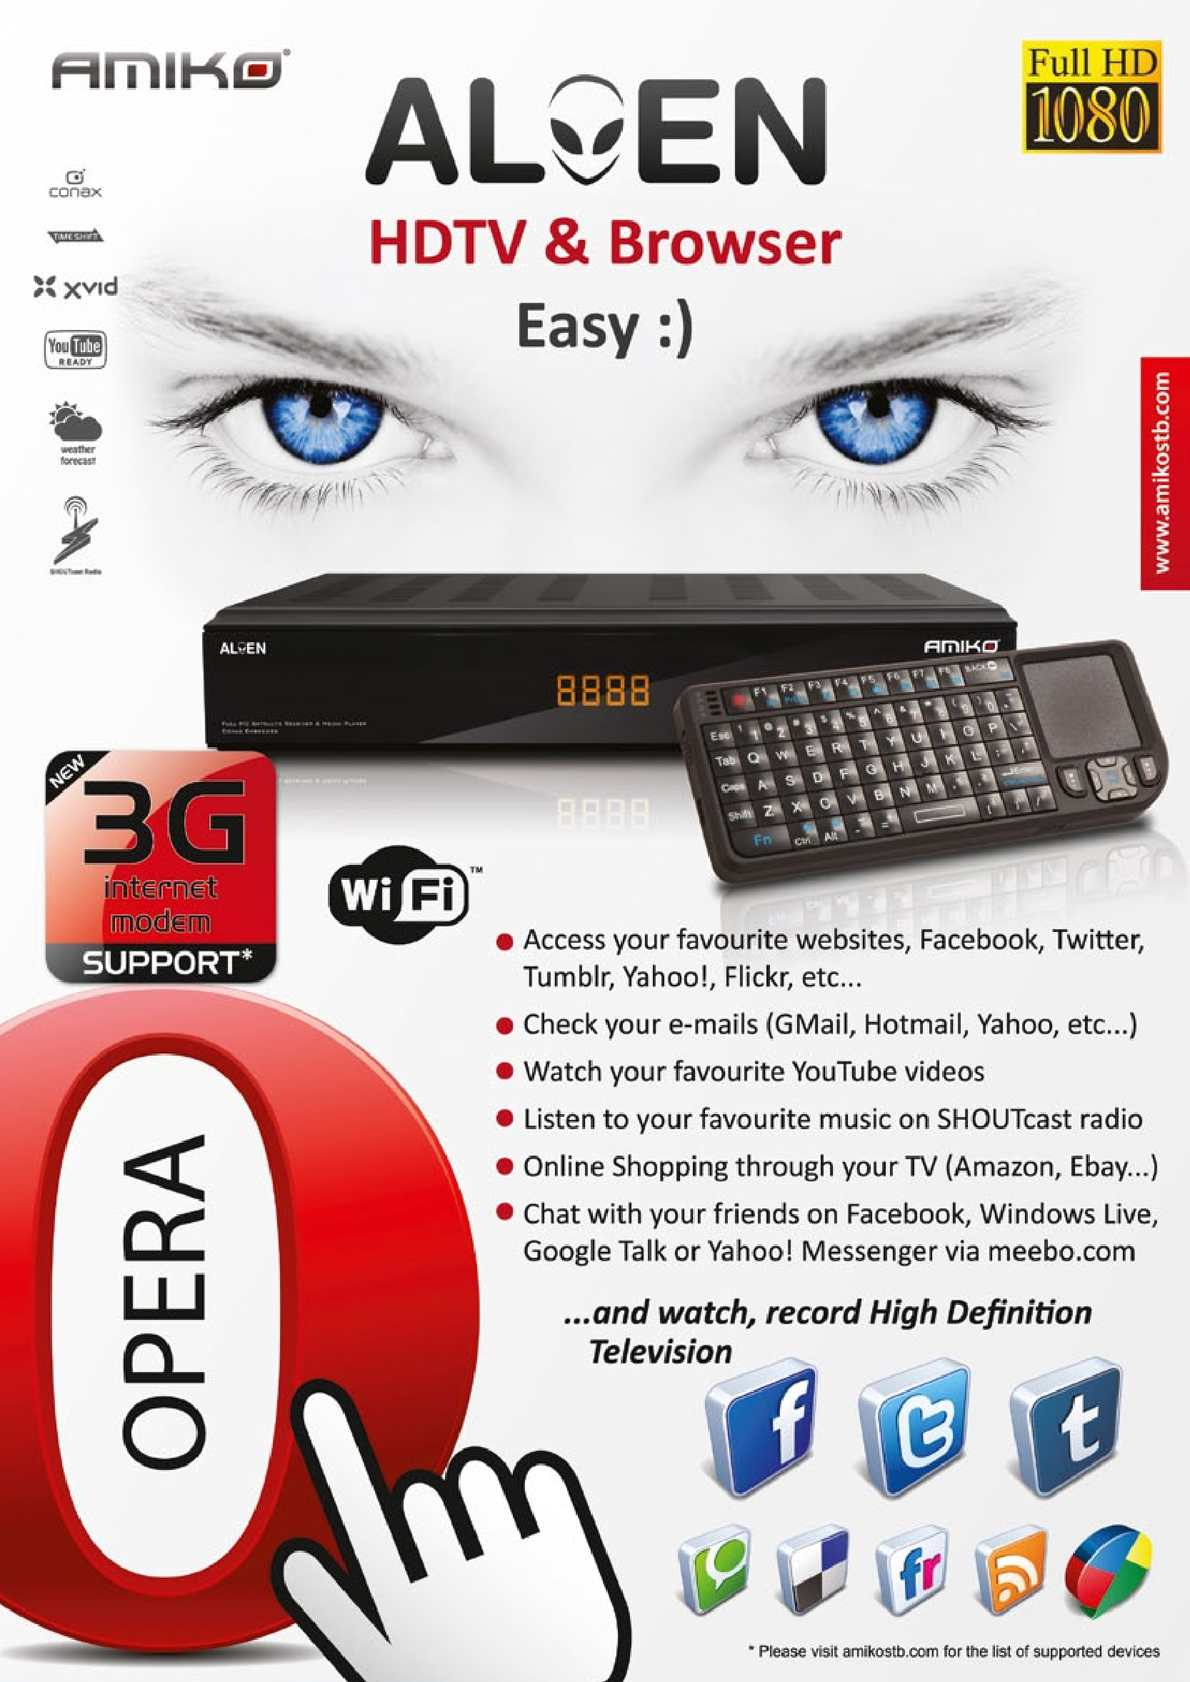 eng TELE-satellite-1201 - CALAMEO Downloader